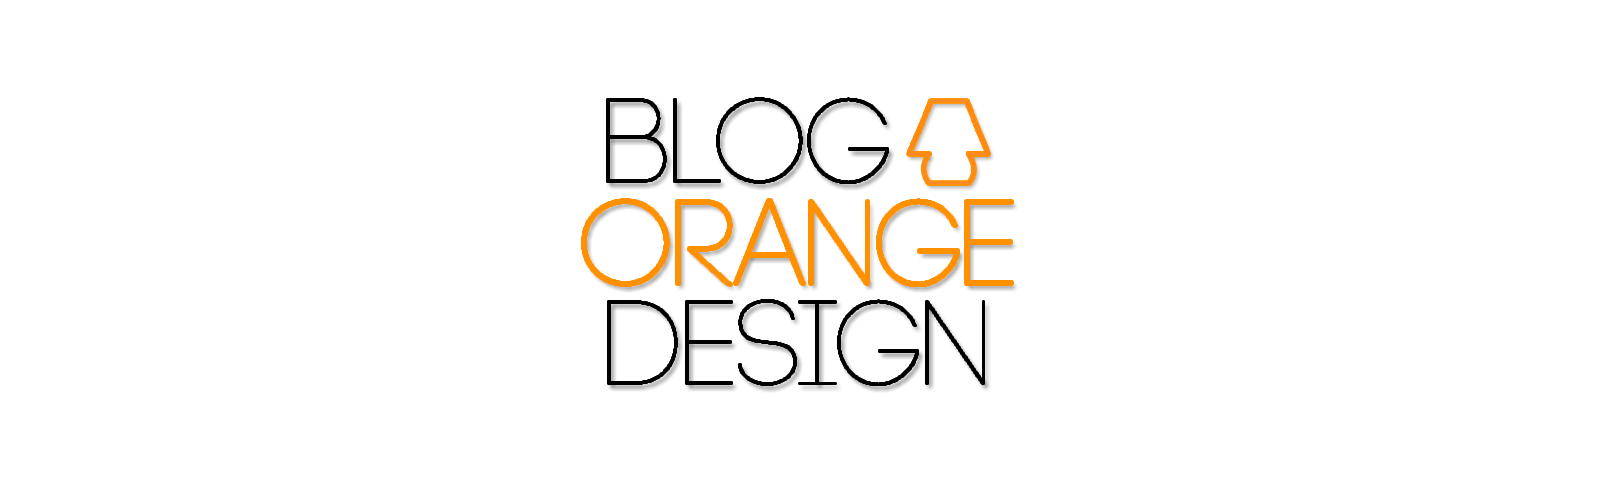 Blog Orange Design